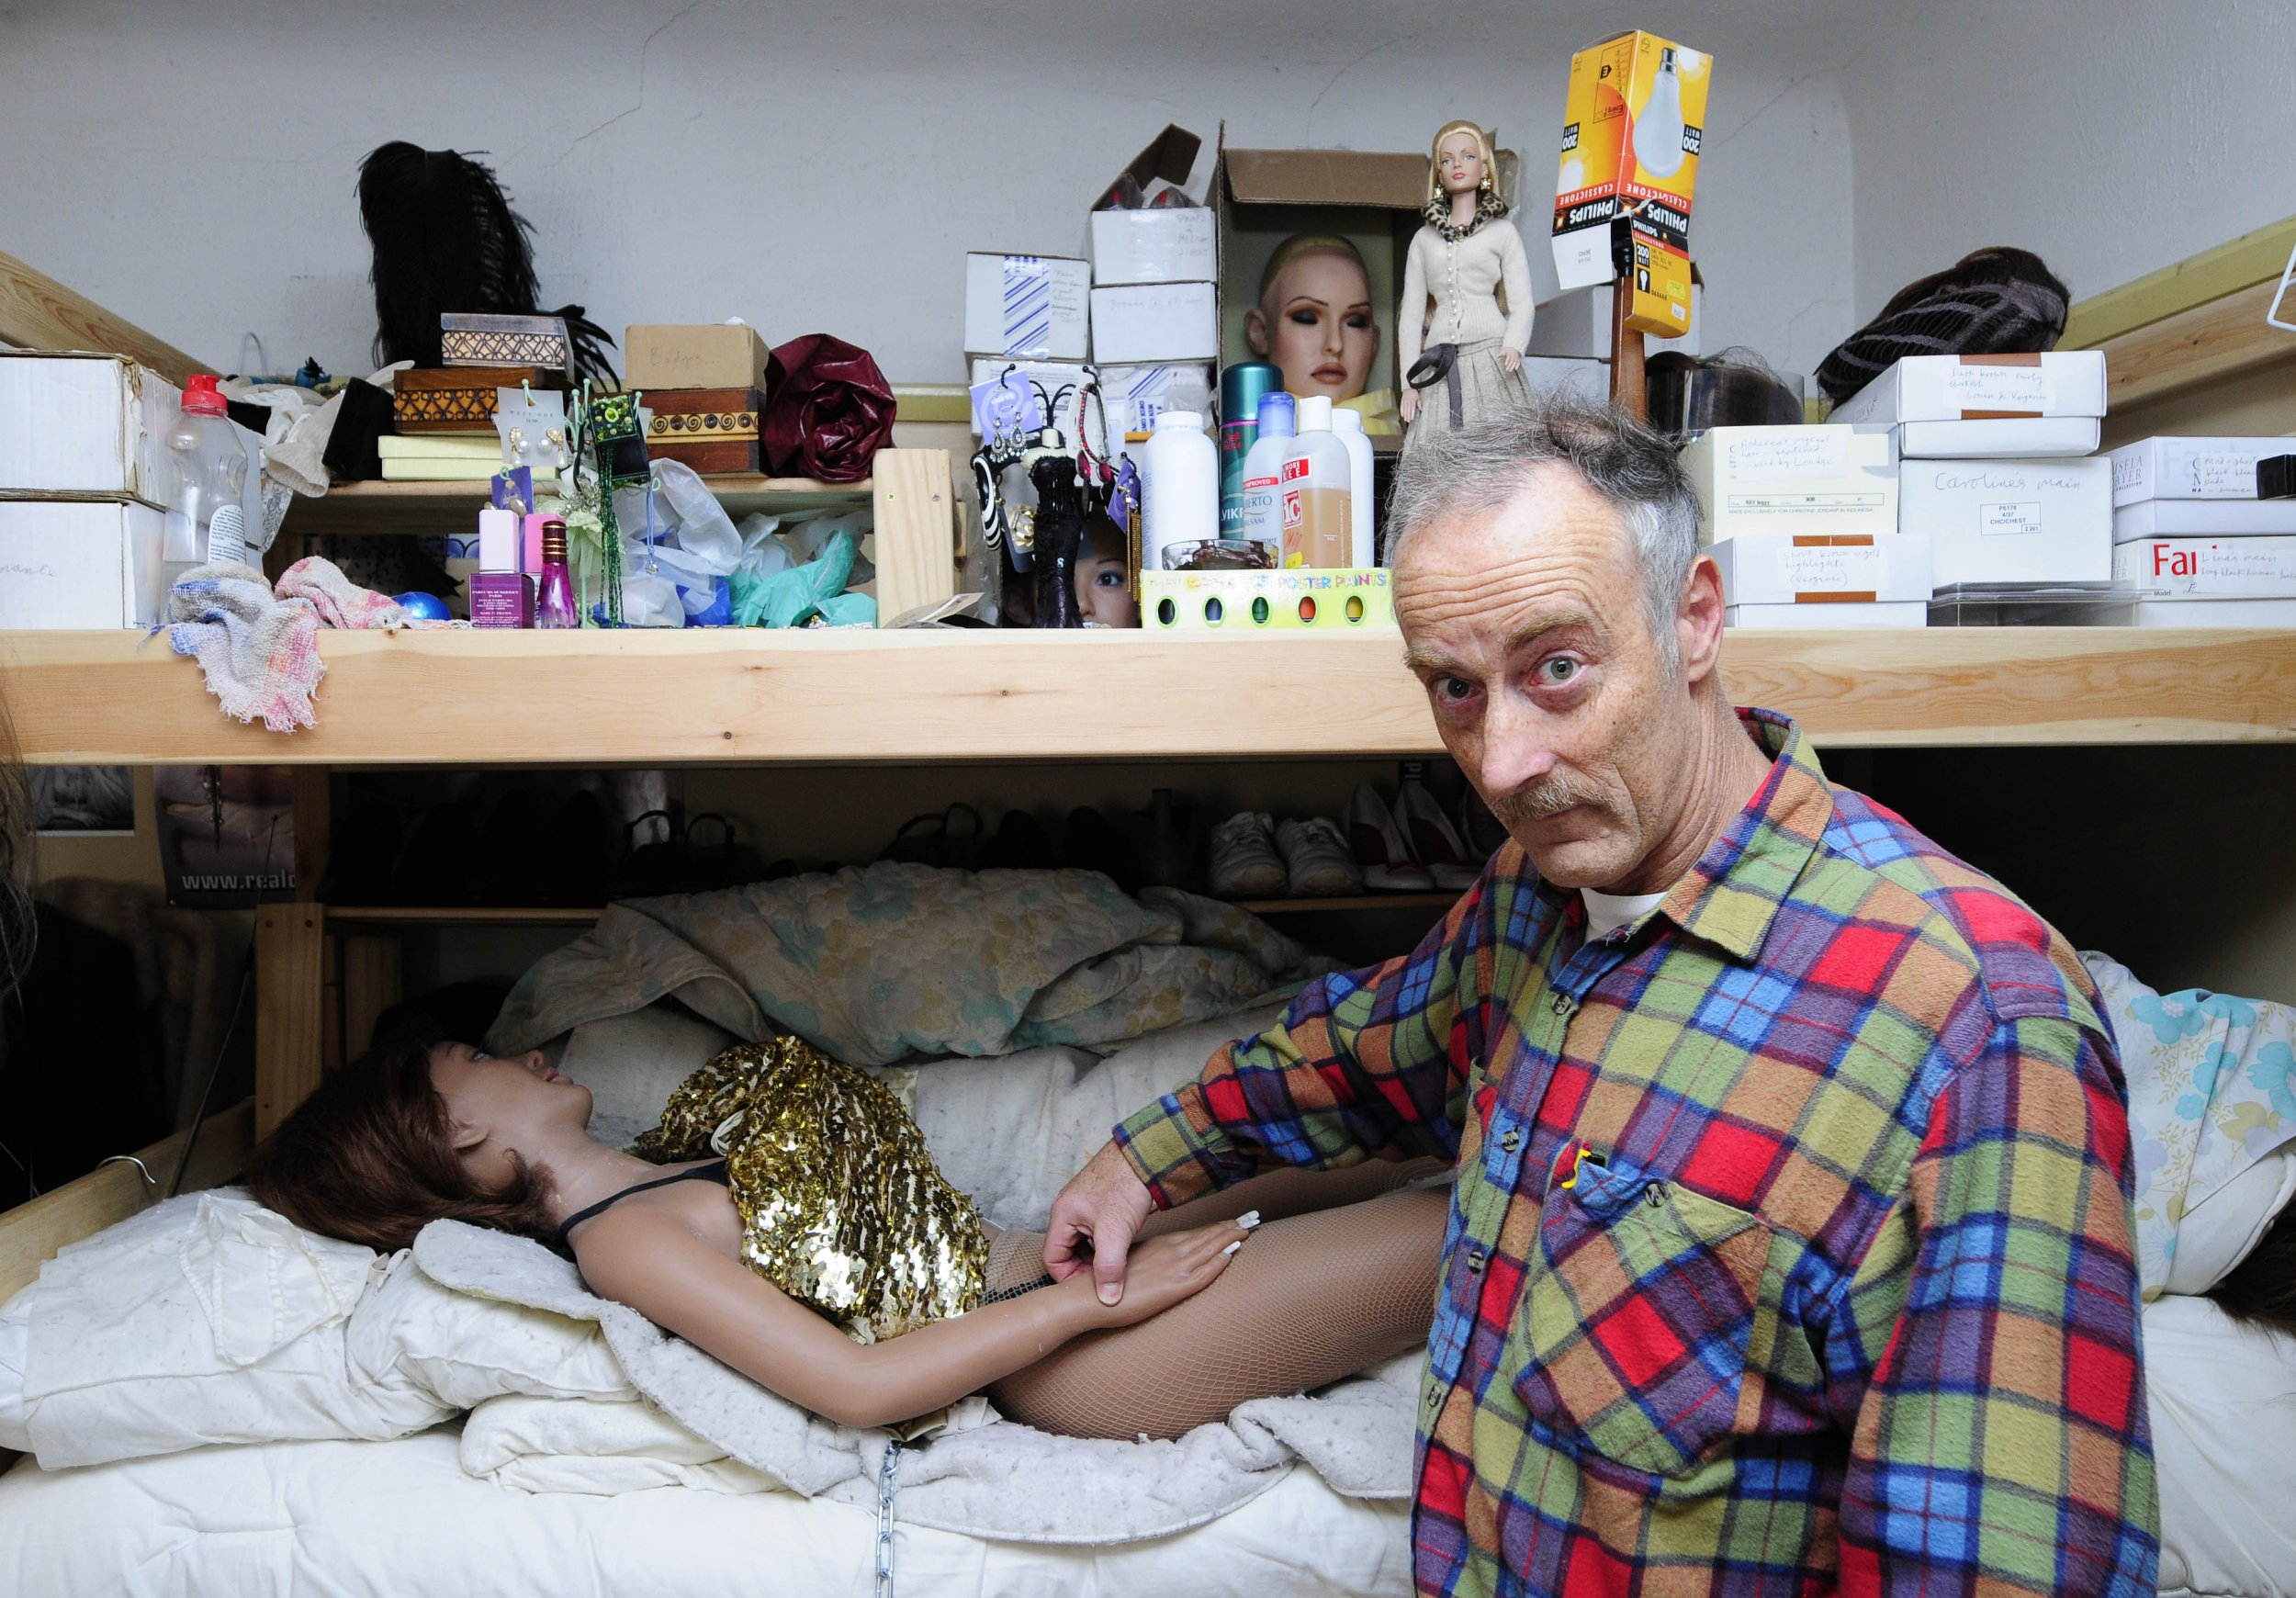 ***EXCLUSIVE*** BOURNEMOUTH, UK: Everard Cunion rearranges one of his dolls. Everard Cunion lives with five women but they are all dolls. Each doll costs him ?5000 and he bought his first doll in 2000. Everard is now dressing his dolls up as Girls Aloud after becoming a fan of the girl group. PHOTOGRAPH BY MARK CLIFFORD / BARCROFT MEDIA LTD UK Office, London. T +44 845 370 2233 W www.barcroftmedia.com Australasian & Pacific Rim Office, Melbourne. E info@barcroftpacific.com T +613 9510 3188 or +613 9510 0688 W www.barcroftpacific.com Indian Office, Delhi. T +91 997 1133 889 W www.barcroftindia.com